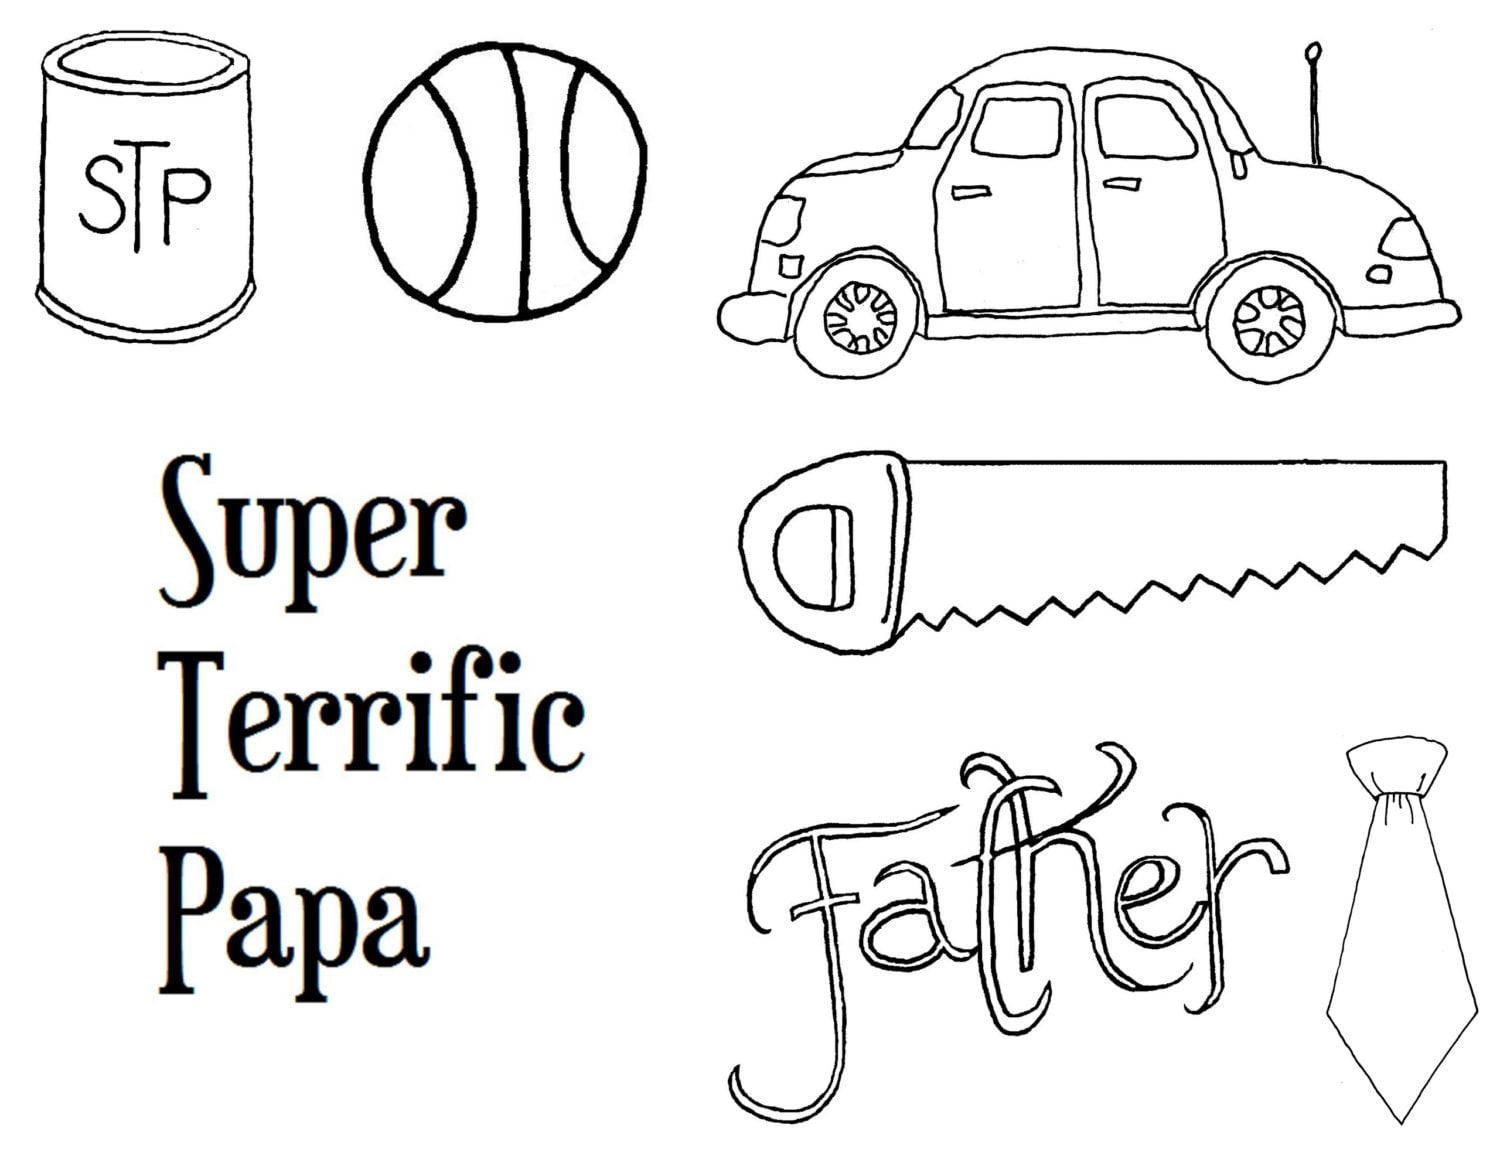 Father's day coloring page, card images, black and white